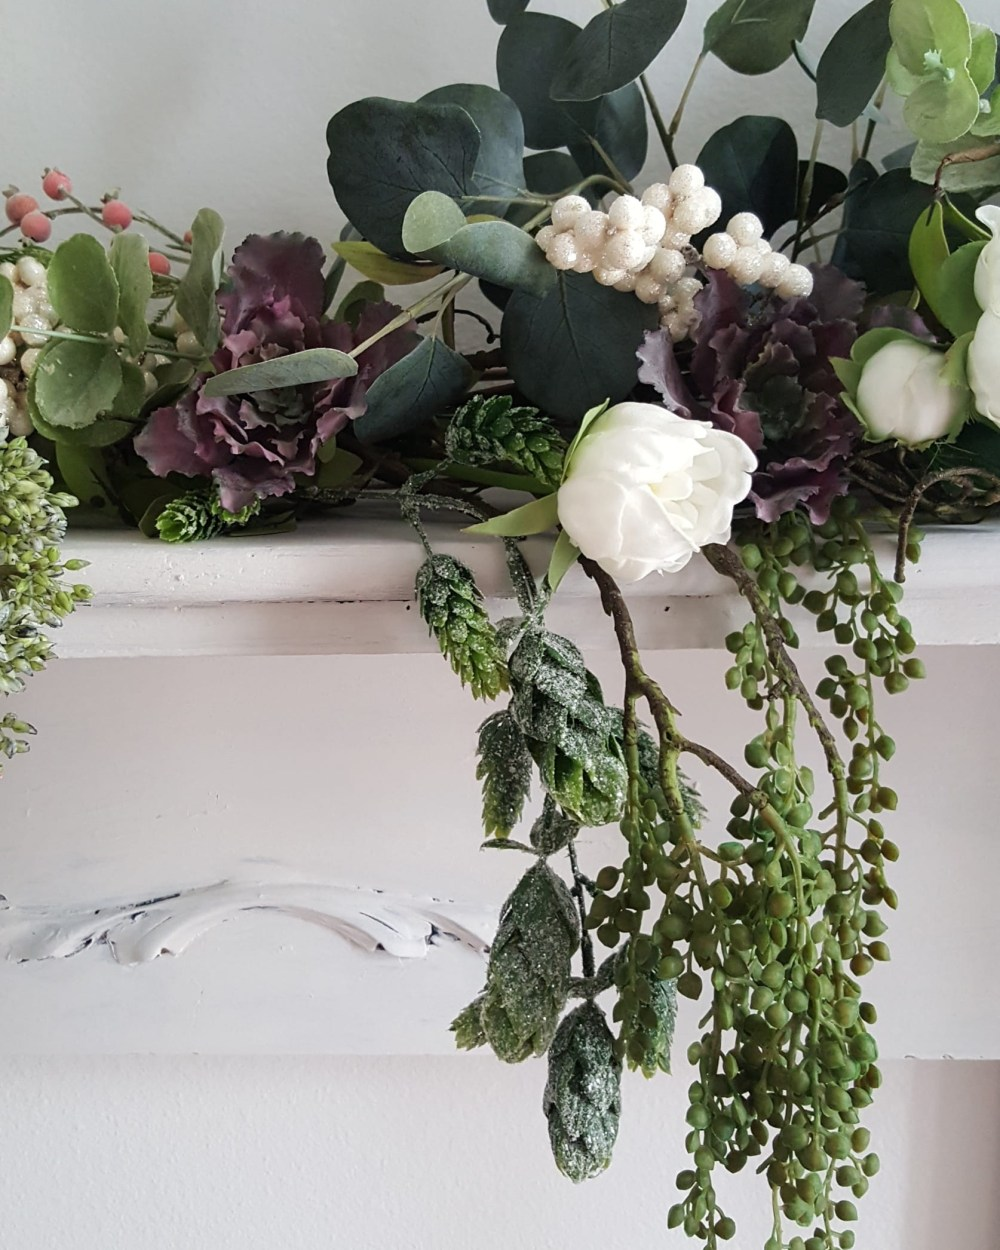 Decorate Mantel Fall Winter Faux Flowers White Neutral Design Candles Vintage Fireplace Decorate Ideas Wood Mirror Succulents Peonies Berry Branches Eucalyptus Afloral Antique Decor Inspiration